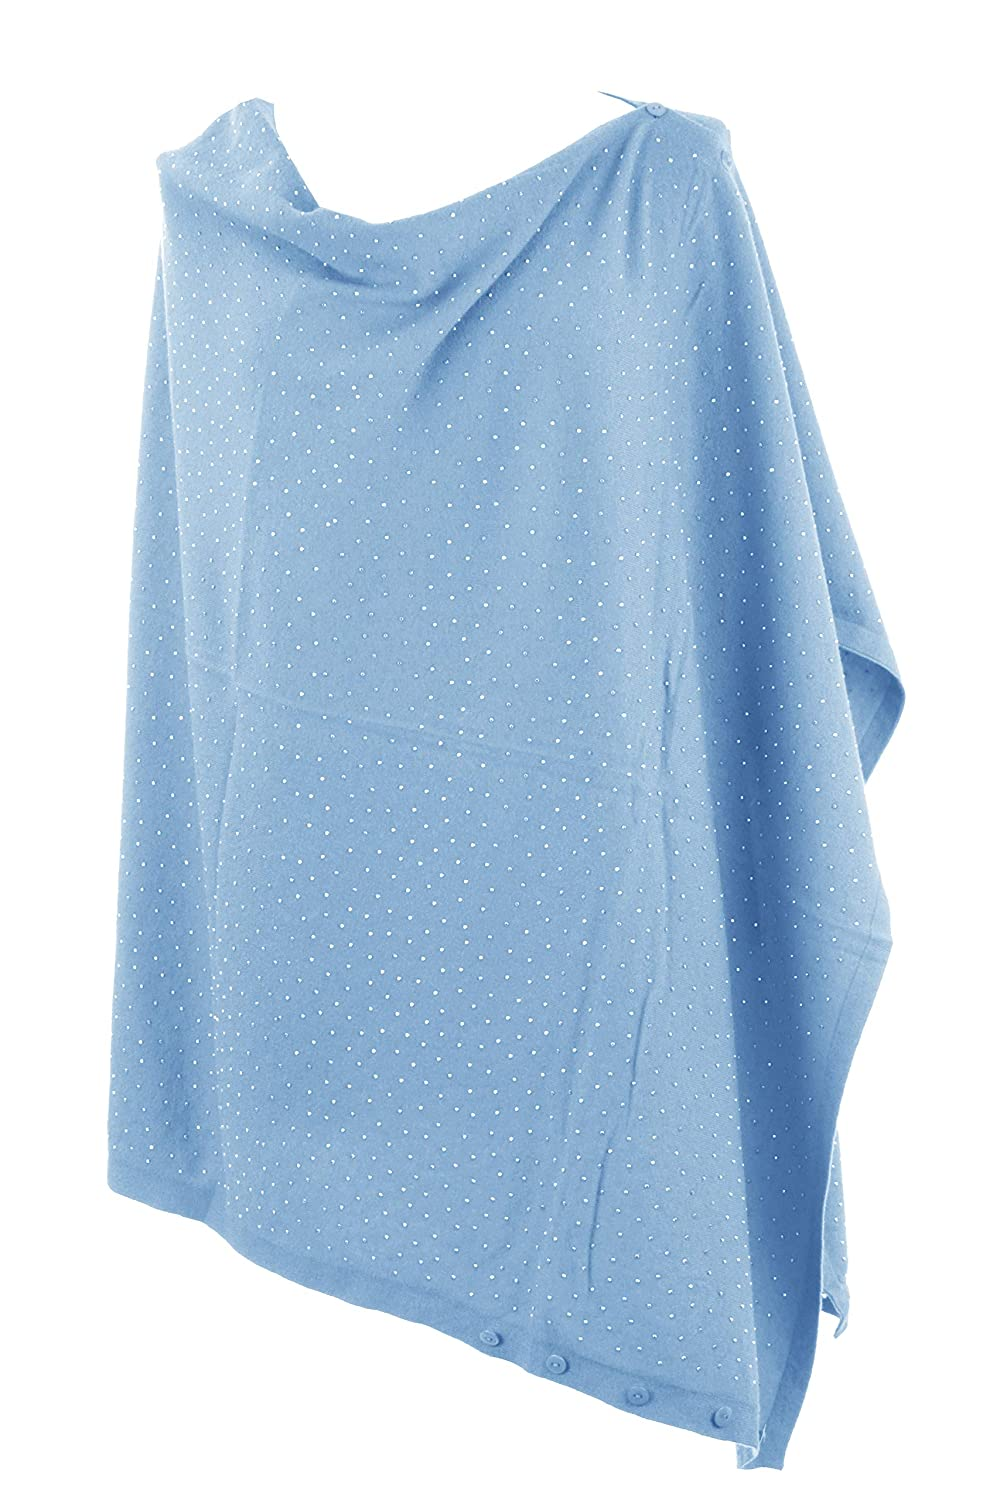 TEXTURE Ladies Womens Lagenlook Stud Diamante Cashmere Feel Modal Knit Button Multiway Poncho Shawl Scarf